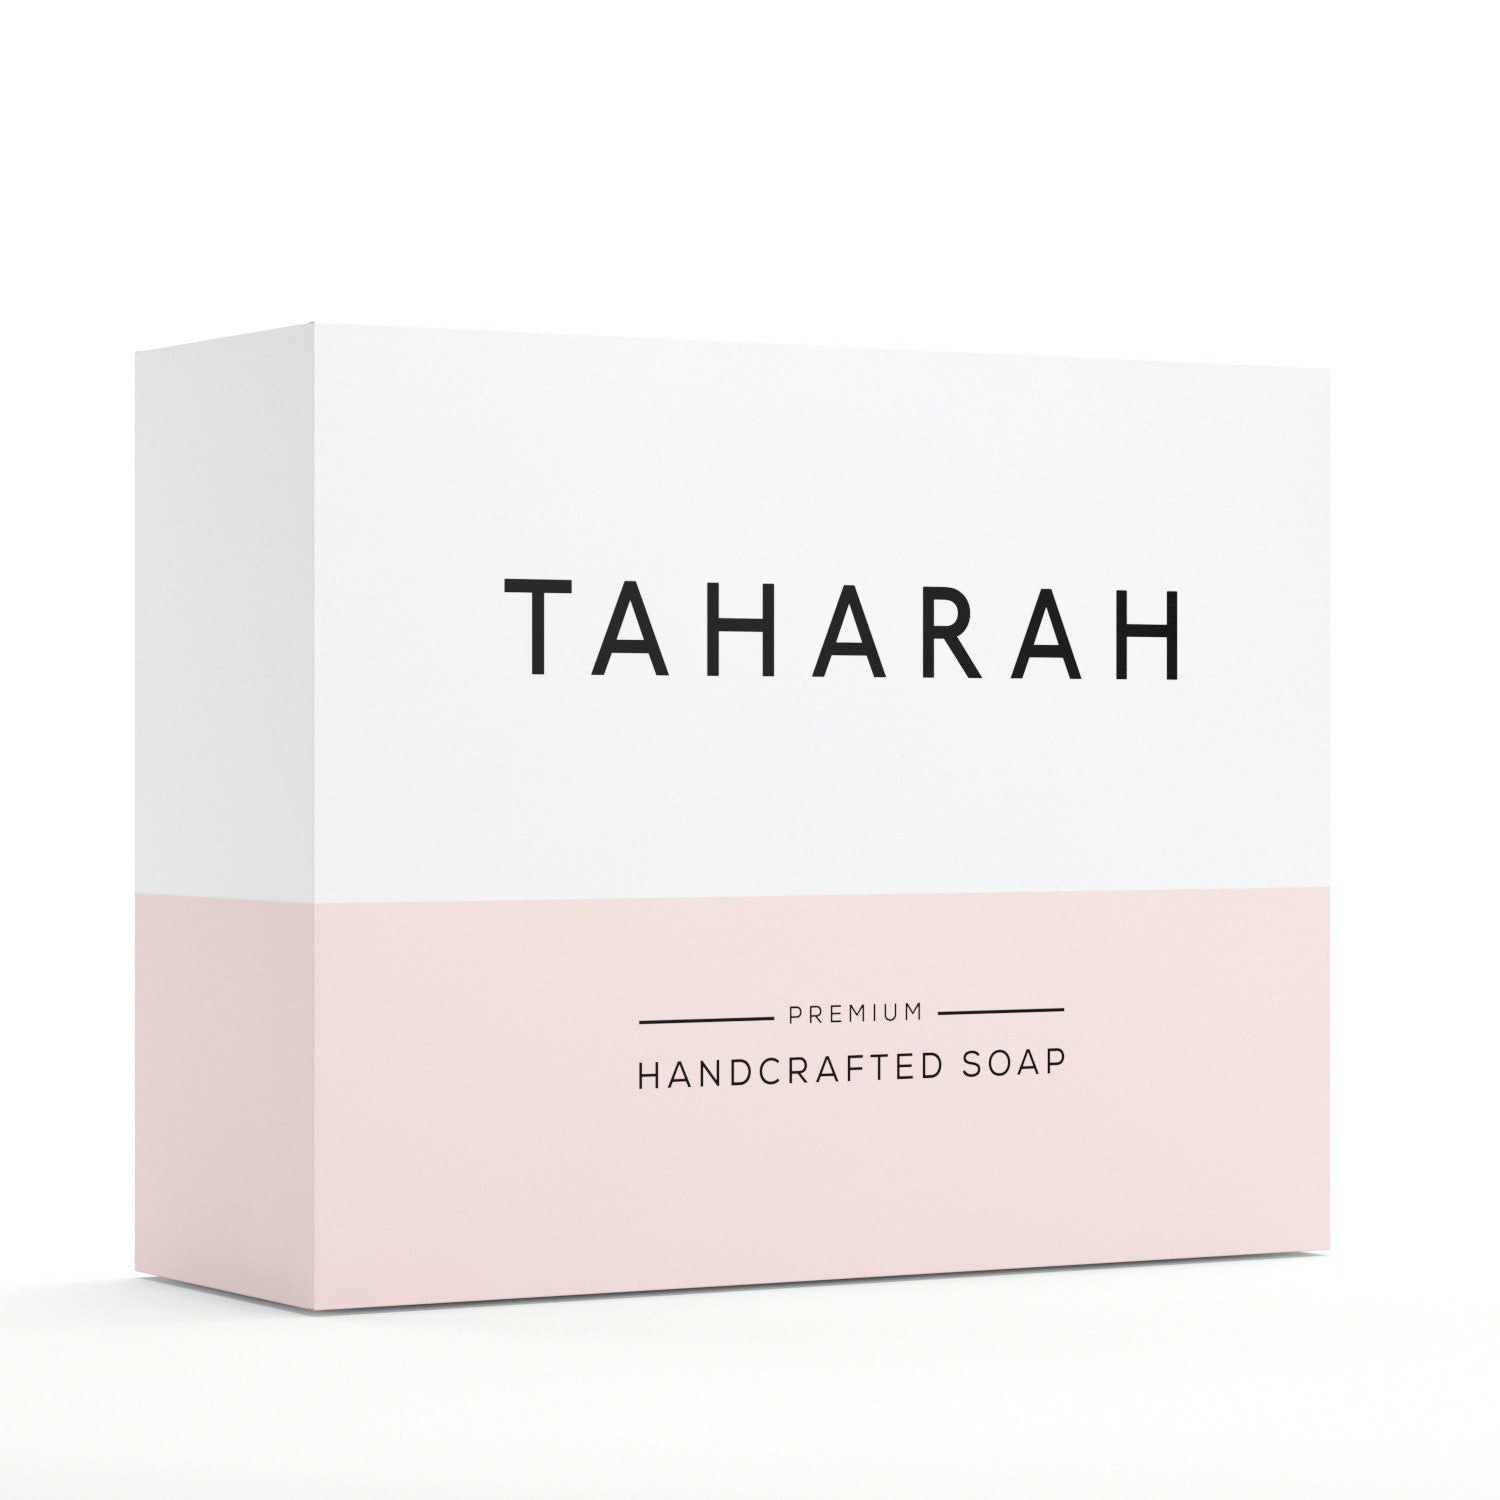 Taharah product packaging